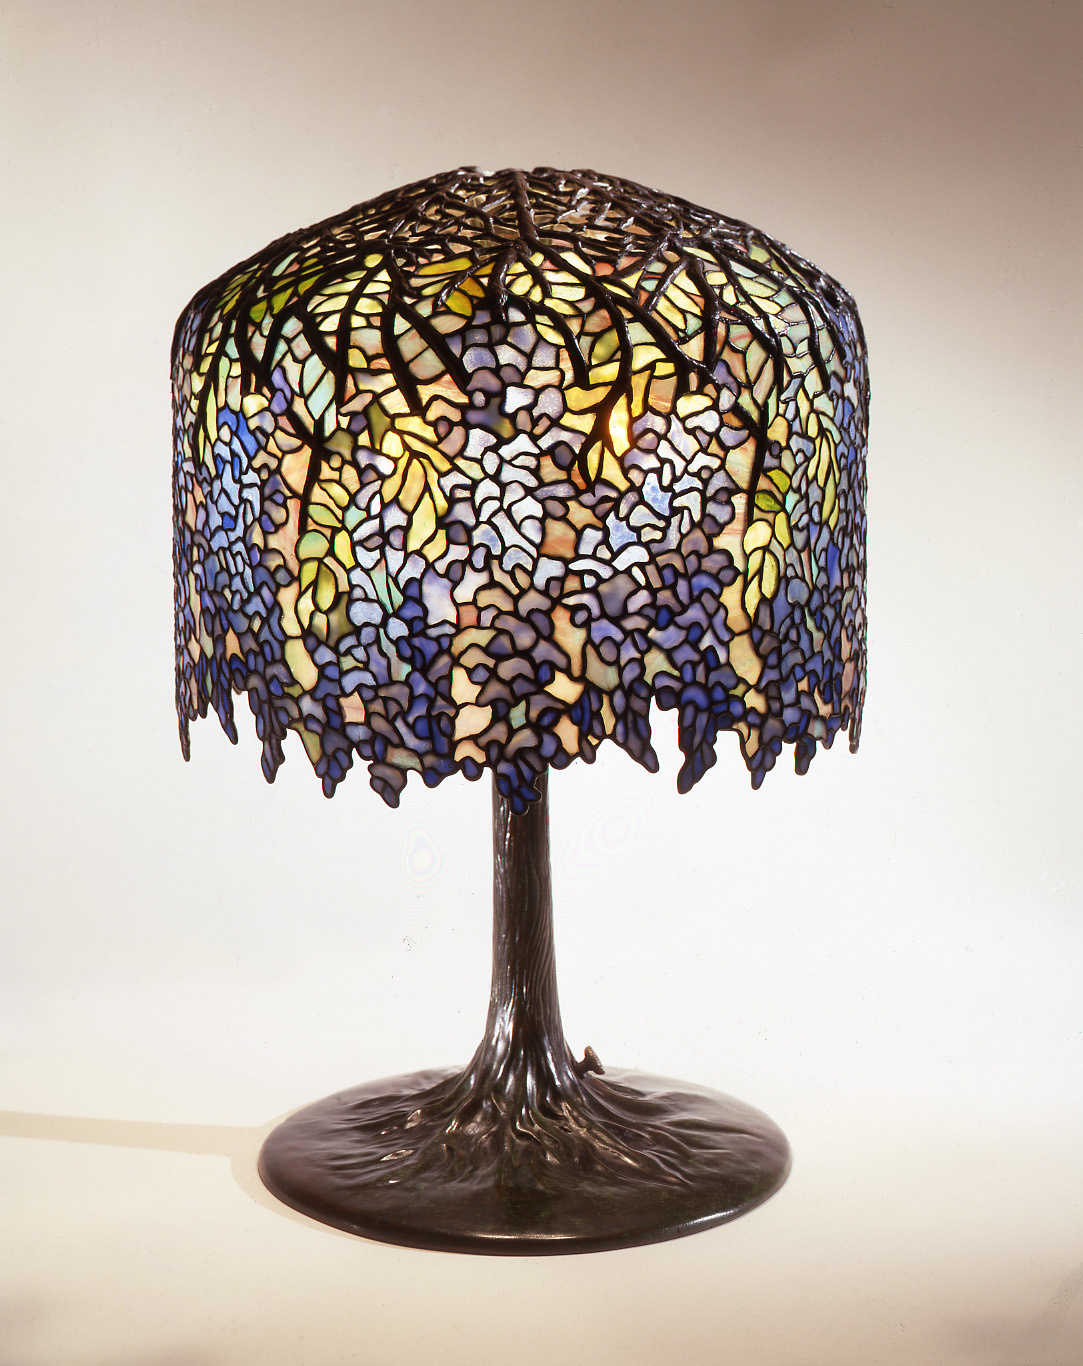 Wisteria Library Lamp. Courtesy of the Neustadt Collection of Tiffany Glass.